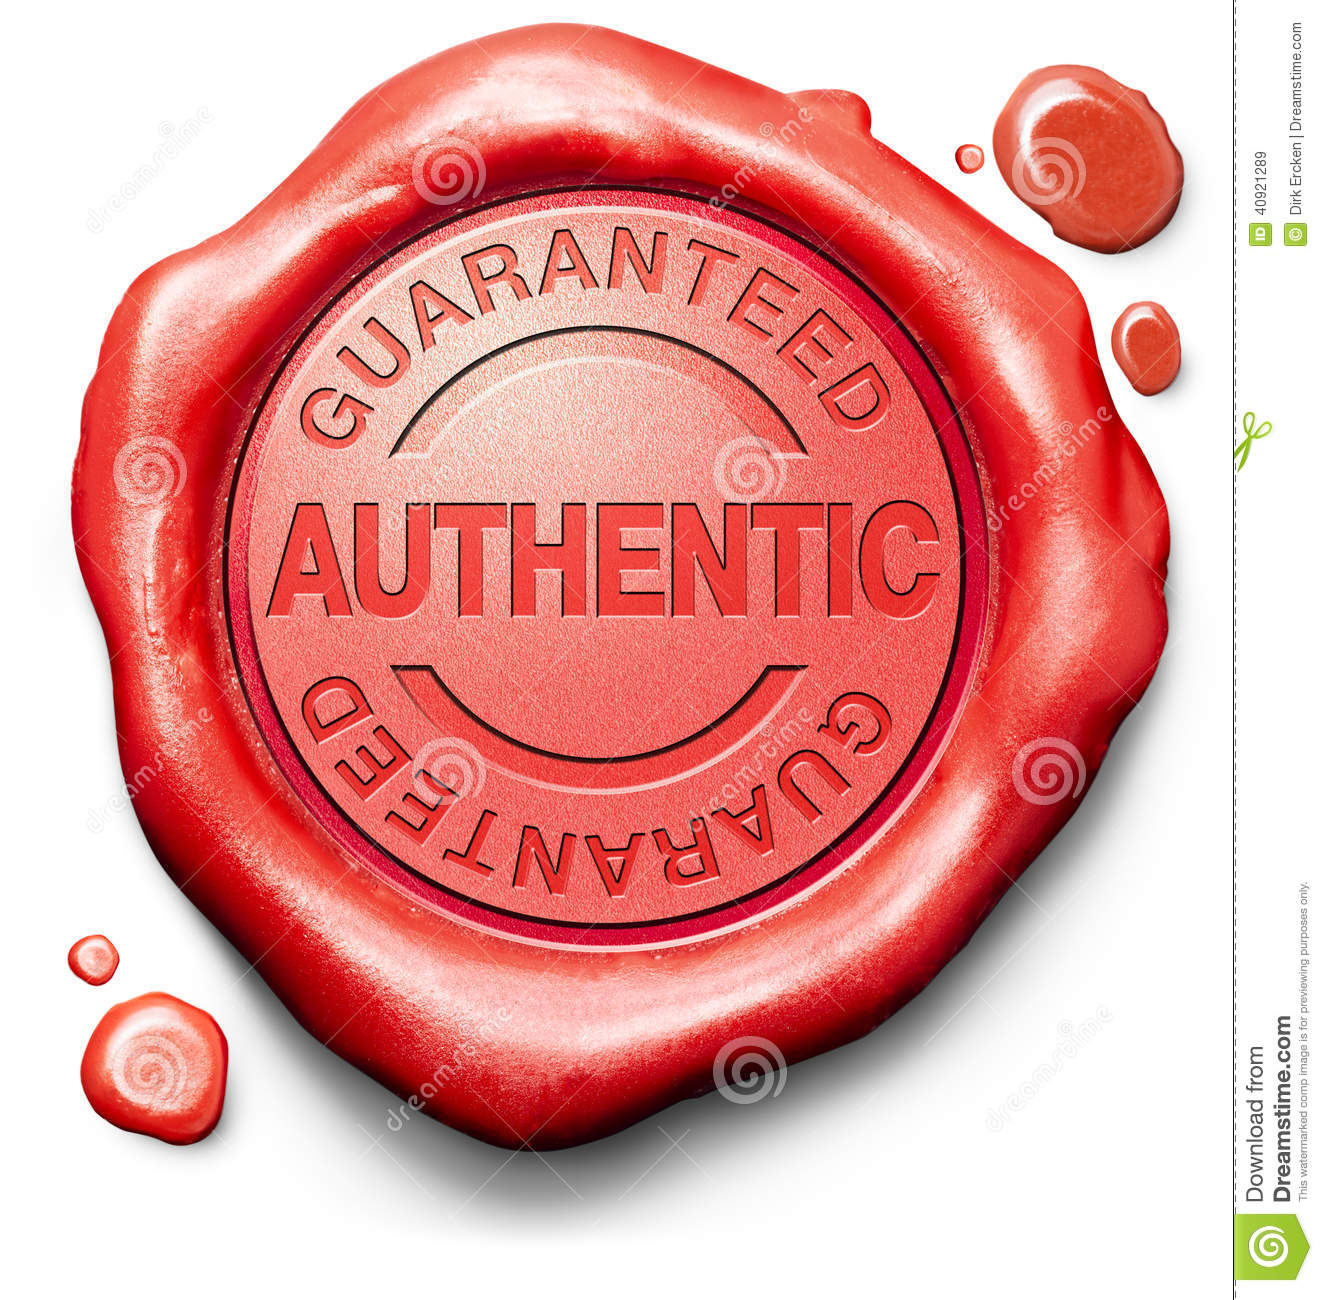 stamp guaranteed authentic quality product stock image